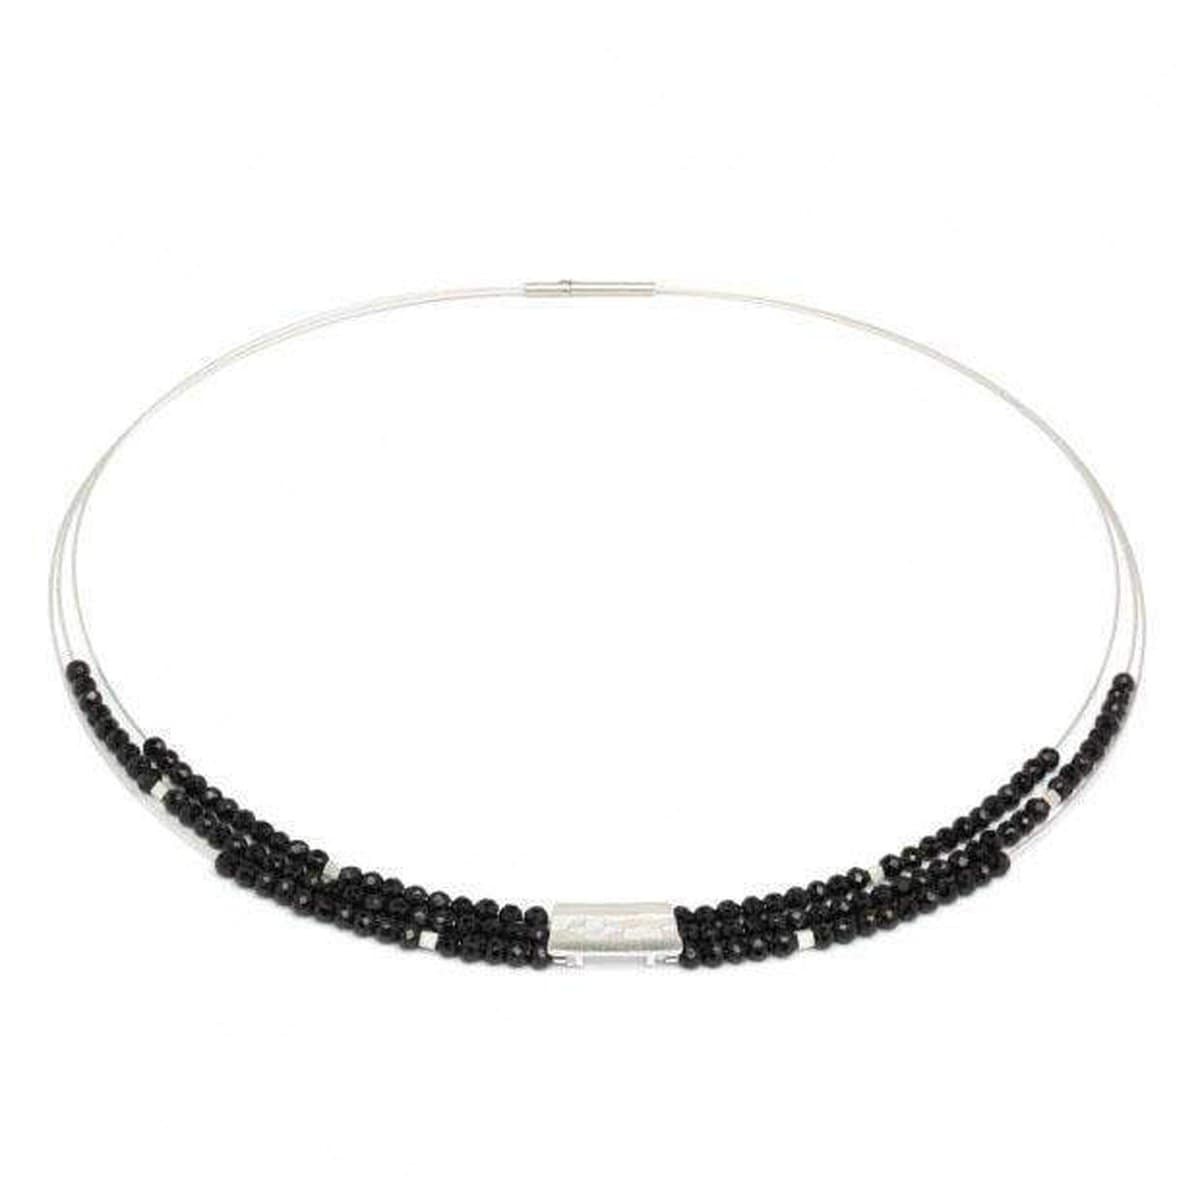 Orfini Black Spinel Necklace - 85089494-Bernd Wolf-Renee Taylor Gallery